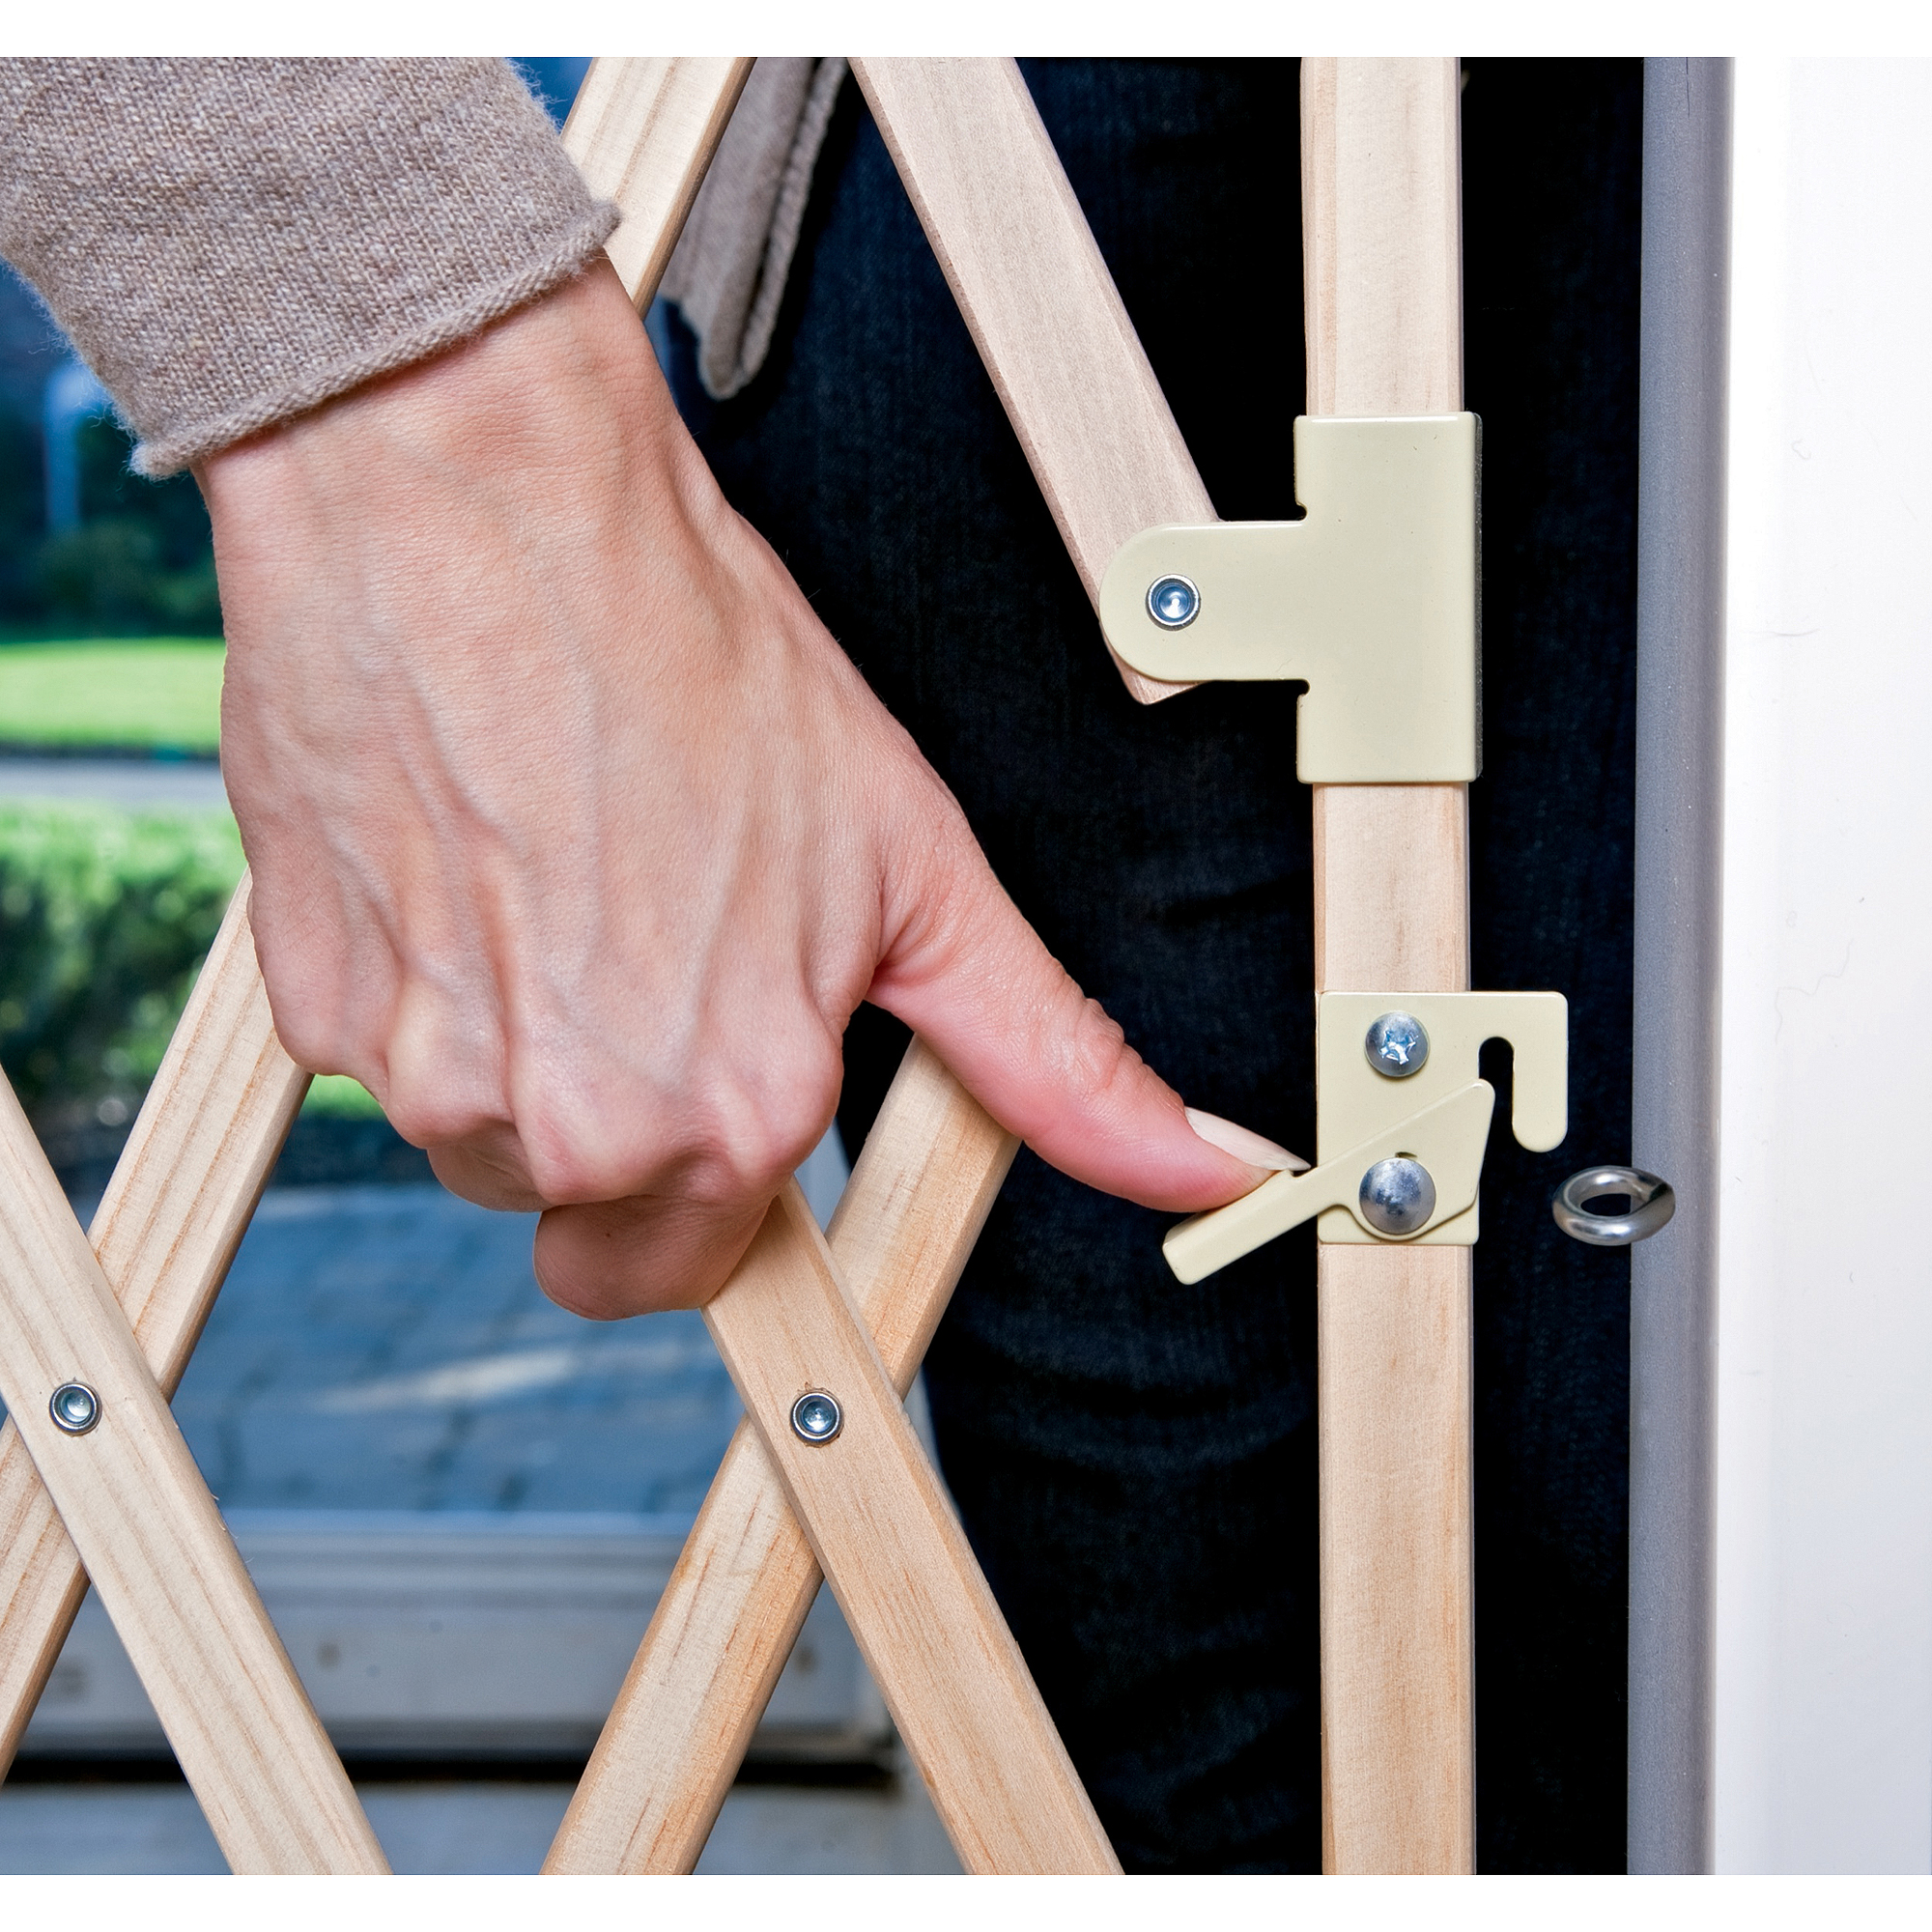 Evenflo - Expansion Swing Wide Gate